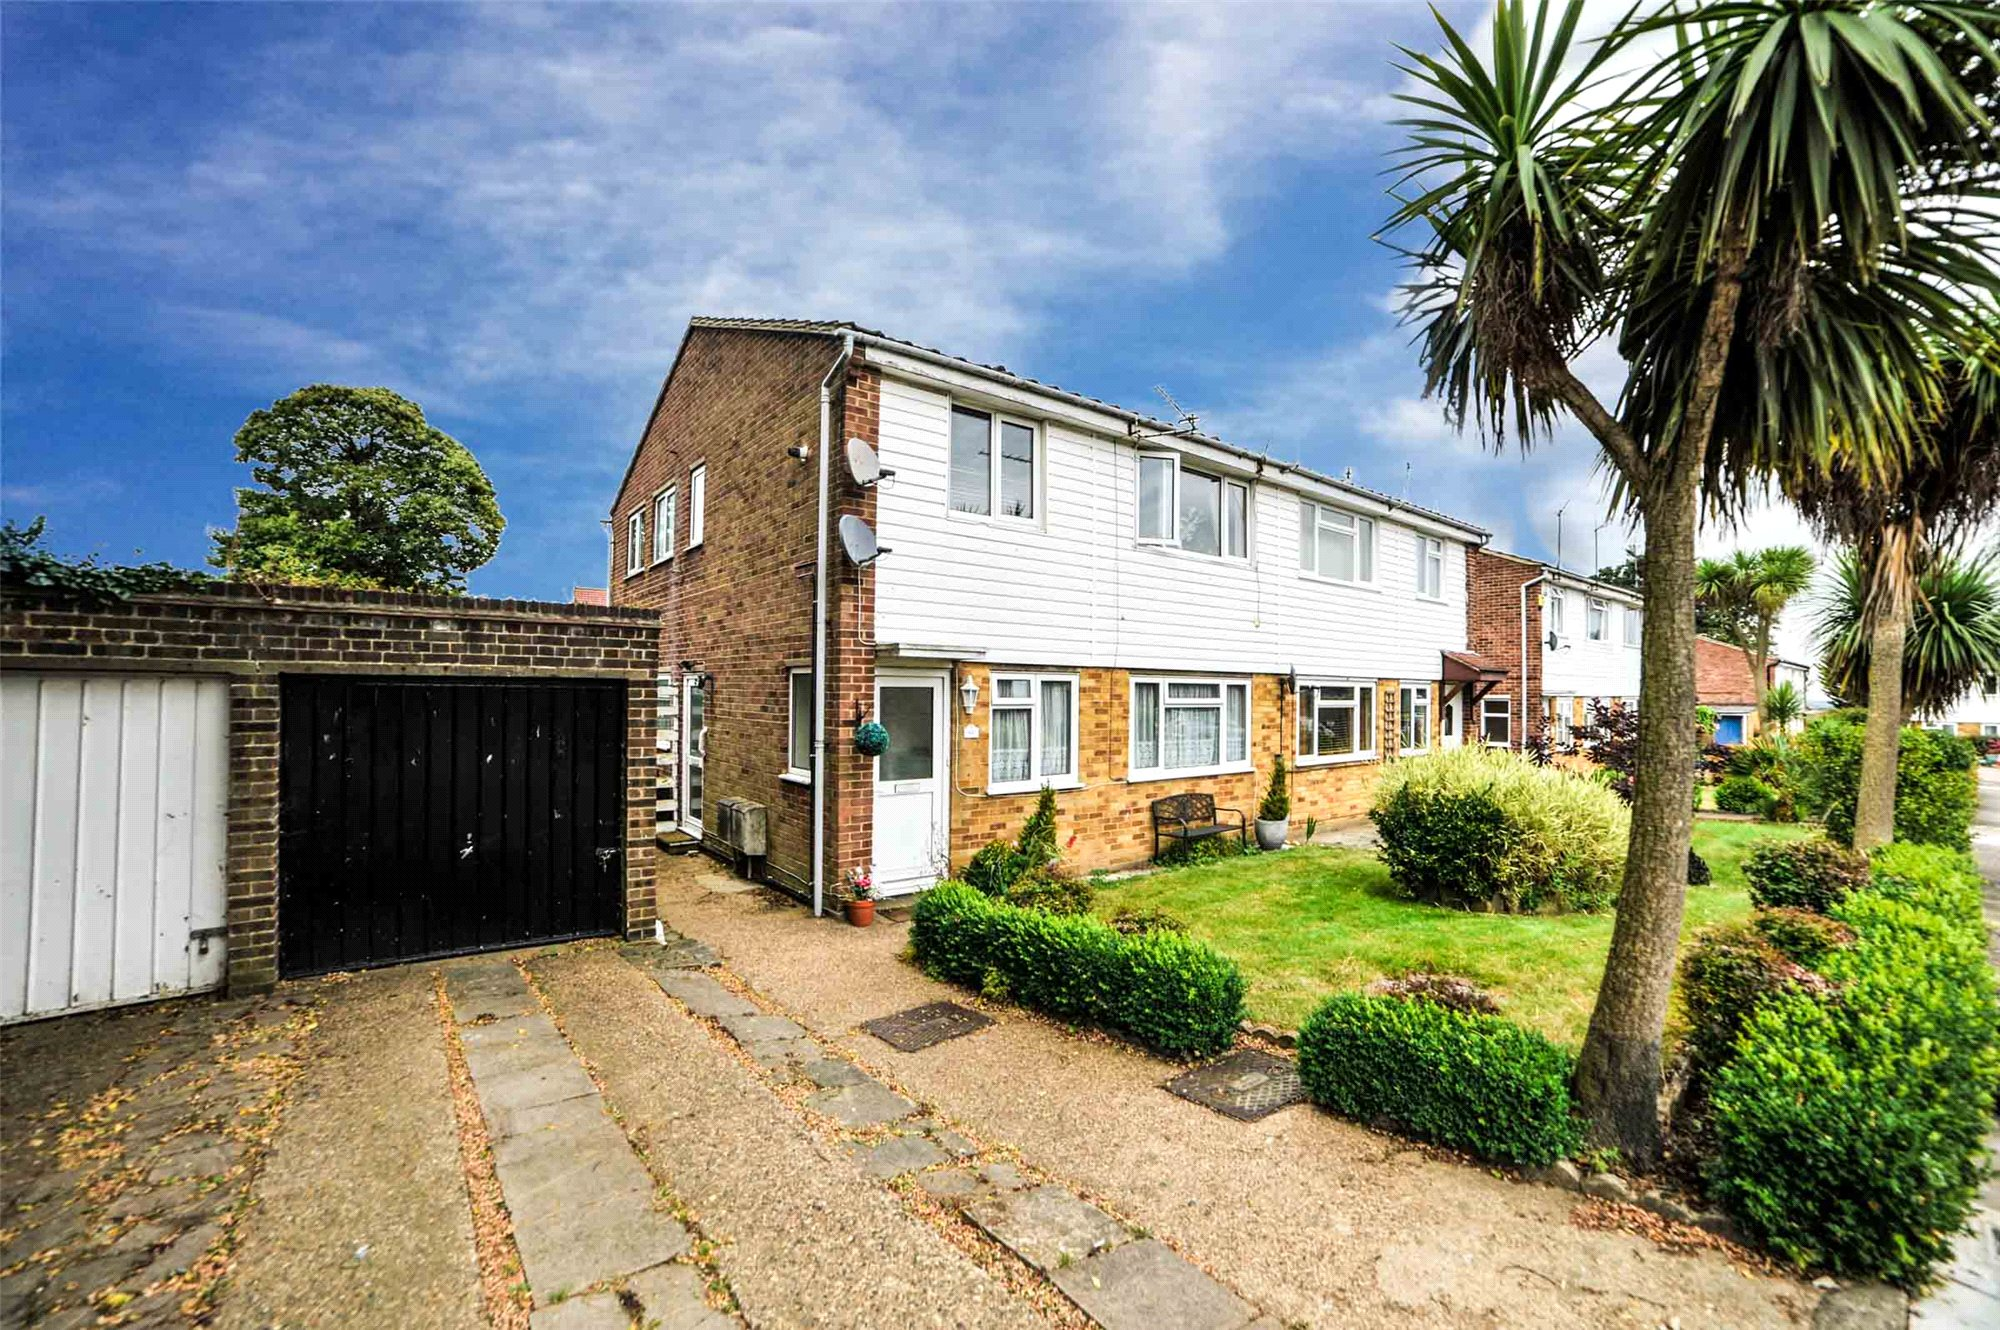 Milford Close, Upper Abbey Wood, London, SE2